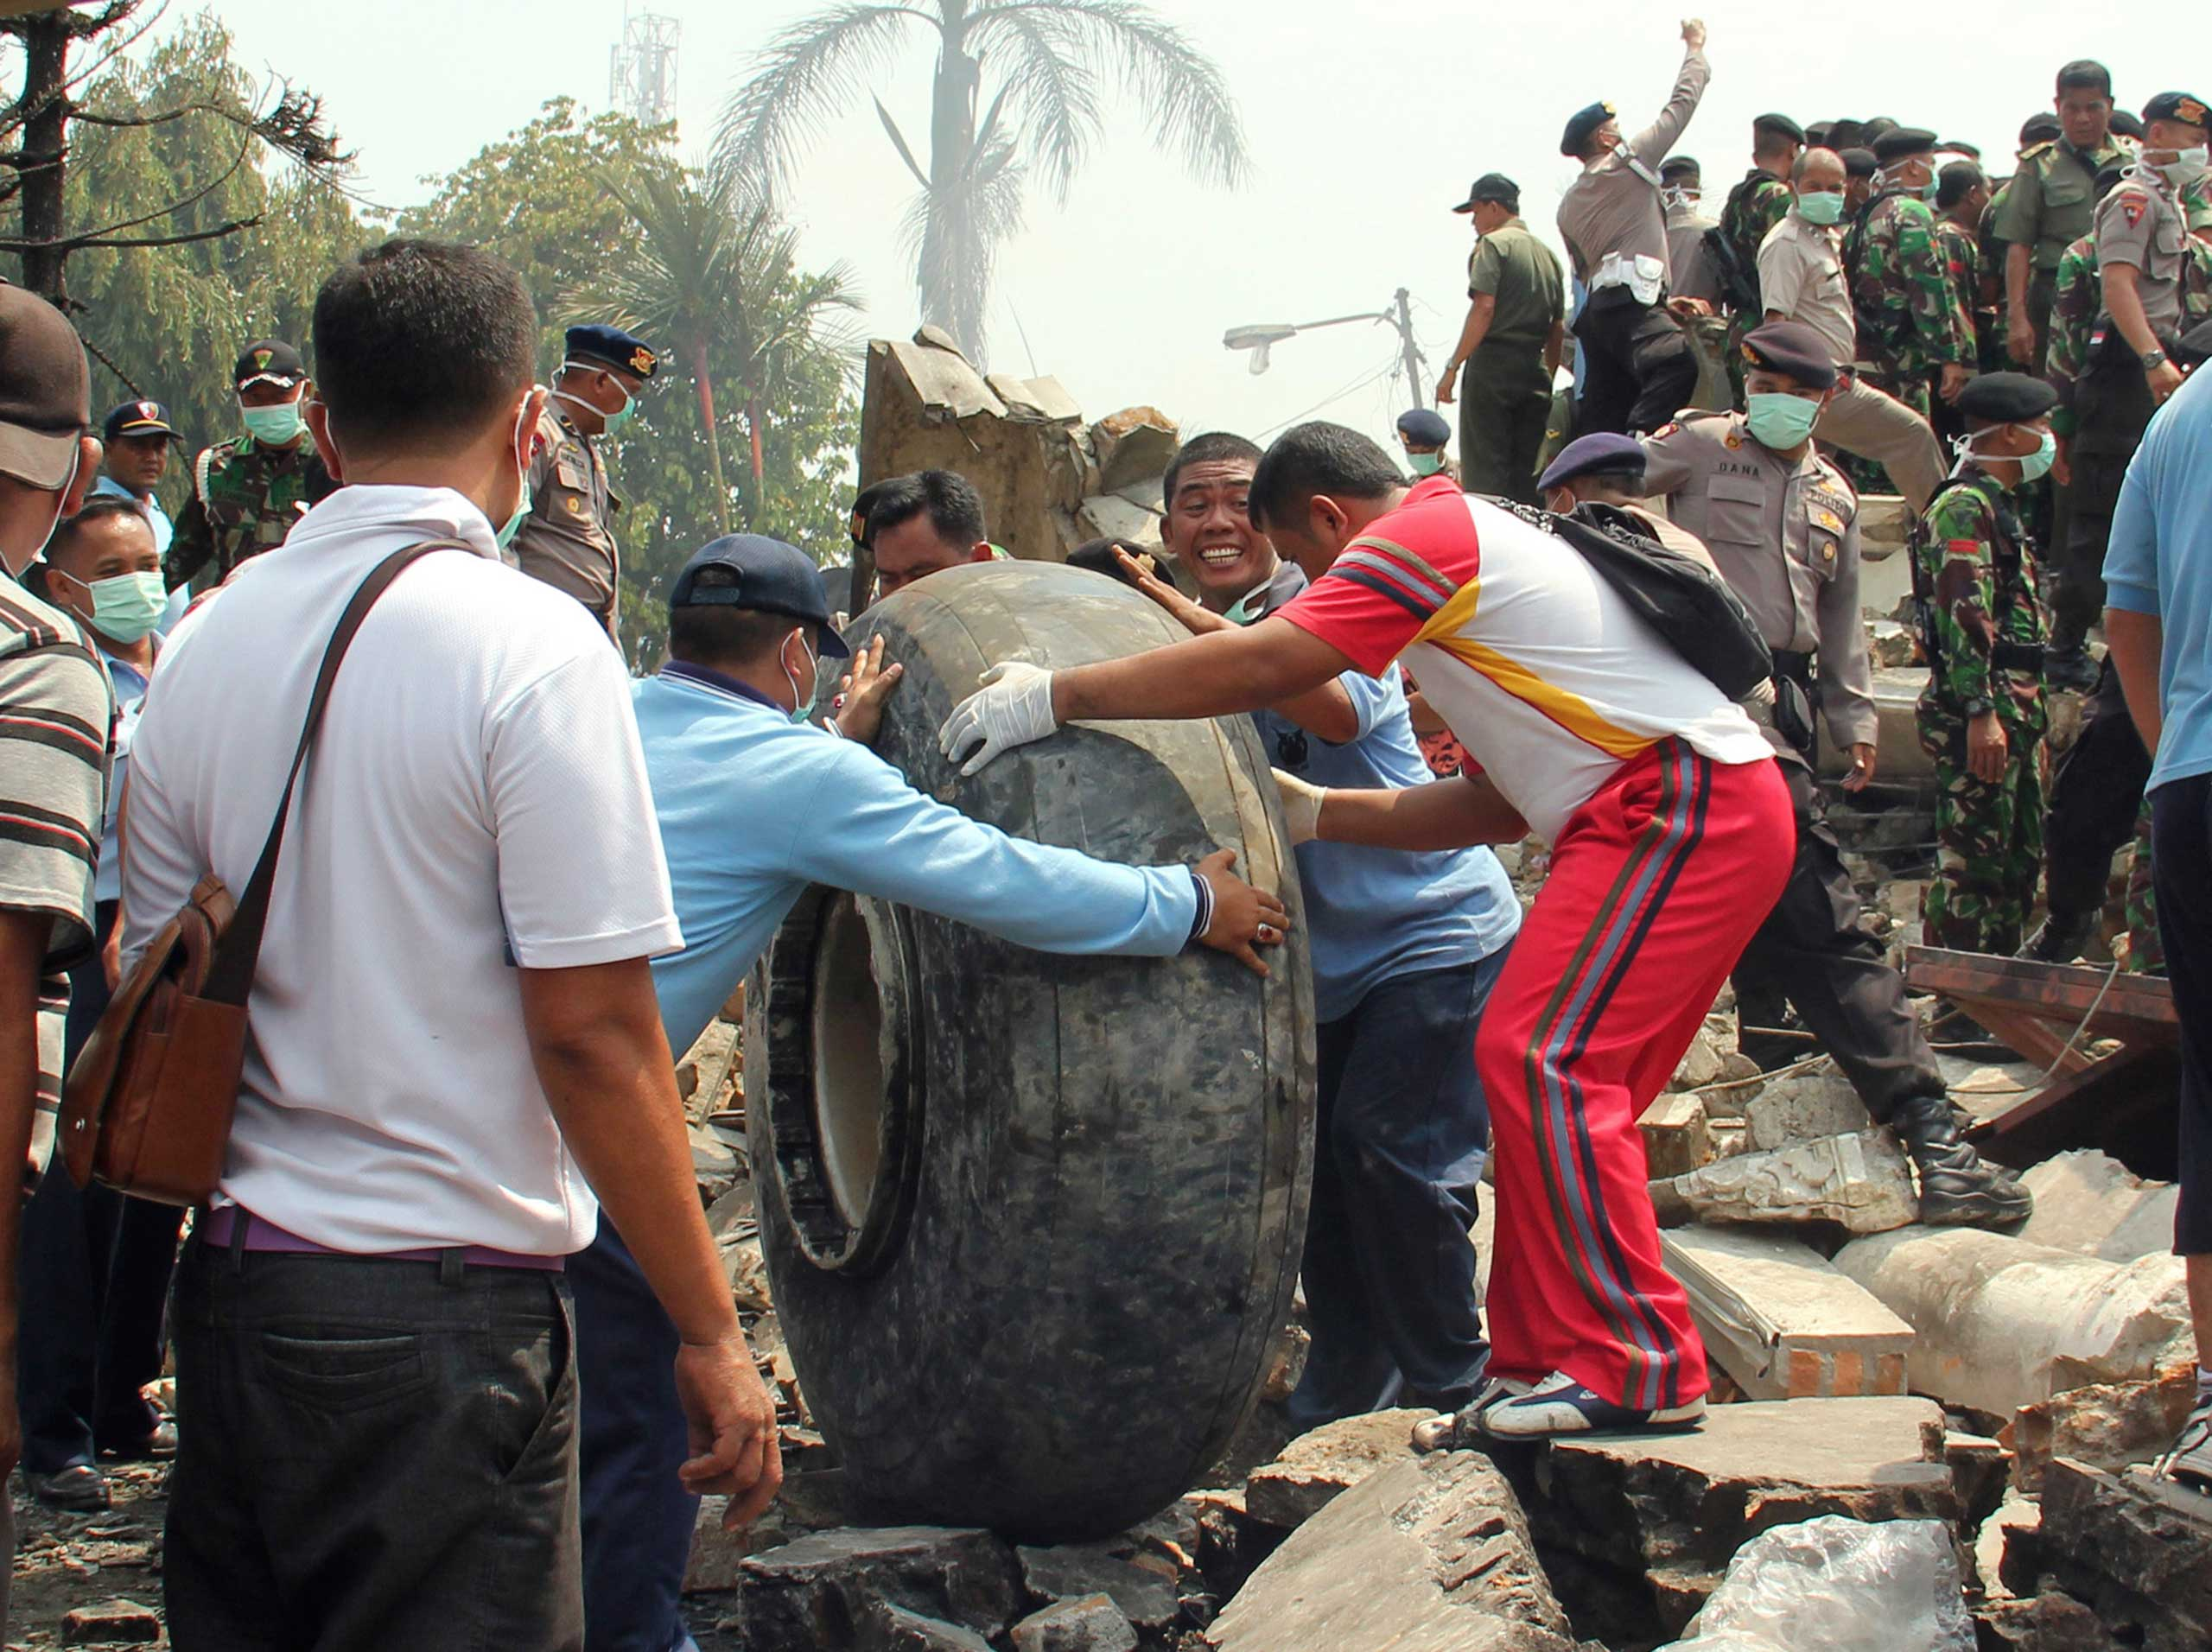 Military personnel remove an aircraft wheel at the site where an air force cargo plane crashed in Medan, Indonesia, on June 30, 2015.